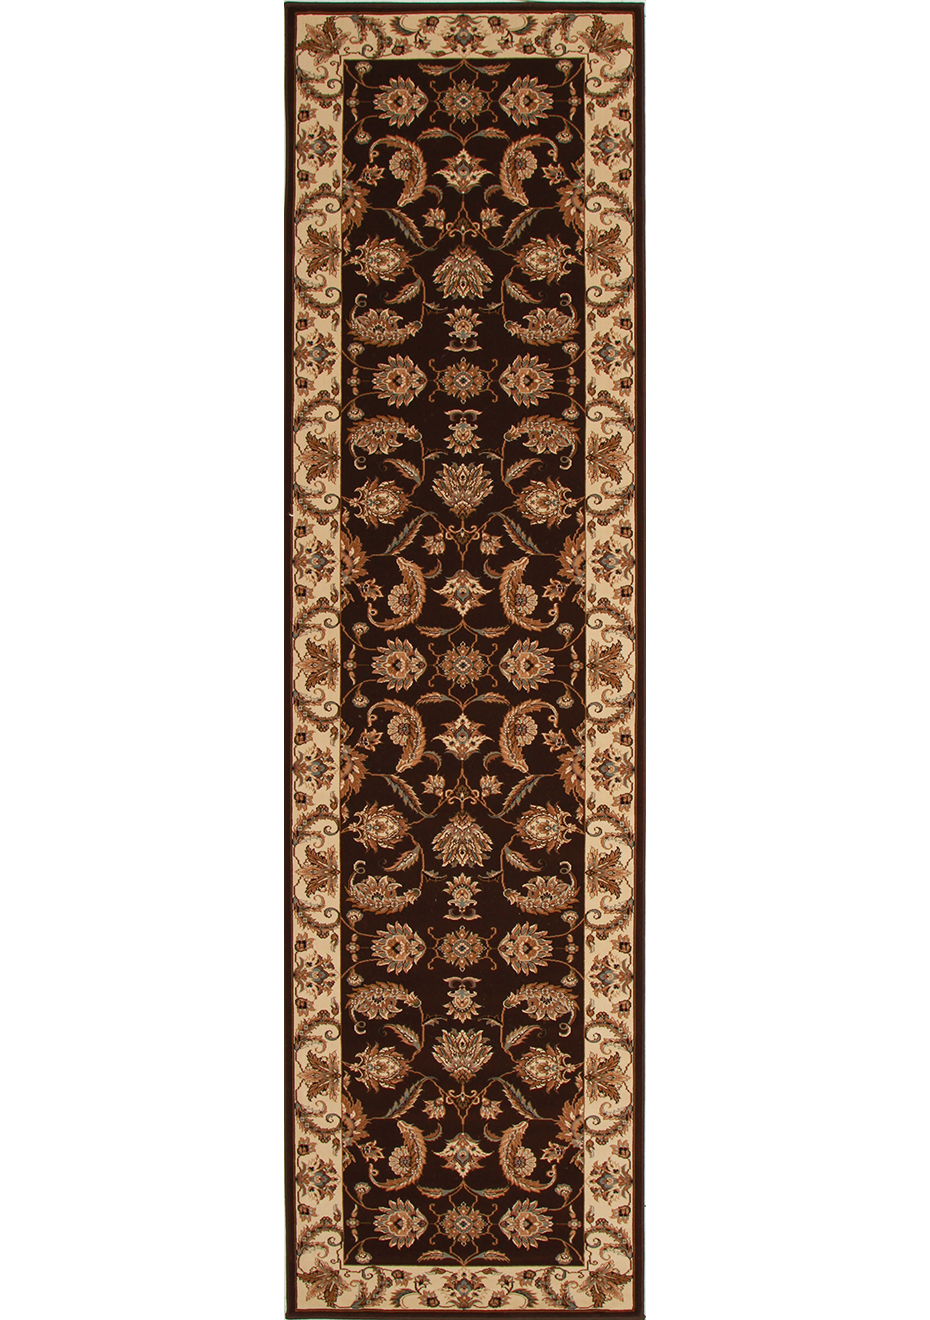 Hall Runners By The Metre Sienna Large Brown 1 5 Million Point Traditional Runner Rug 400x80cm By Rug Culture